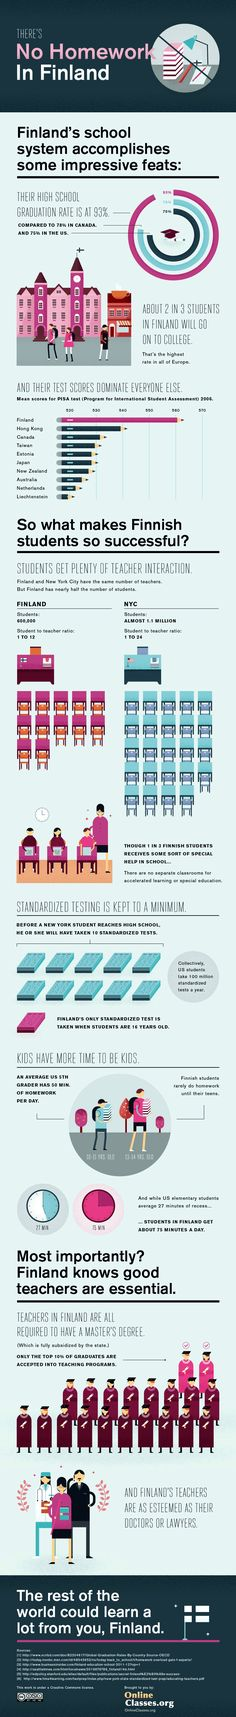 There's no homework in Finland #infografia #infographic #education